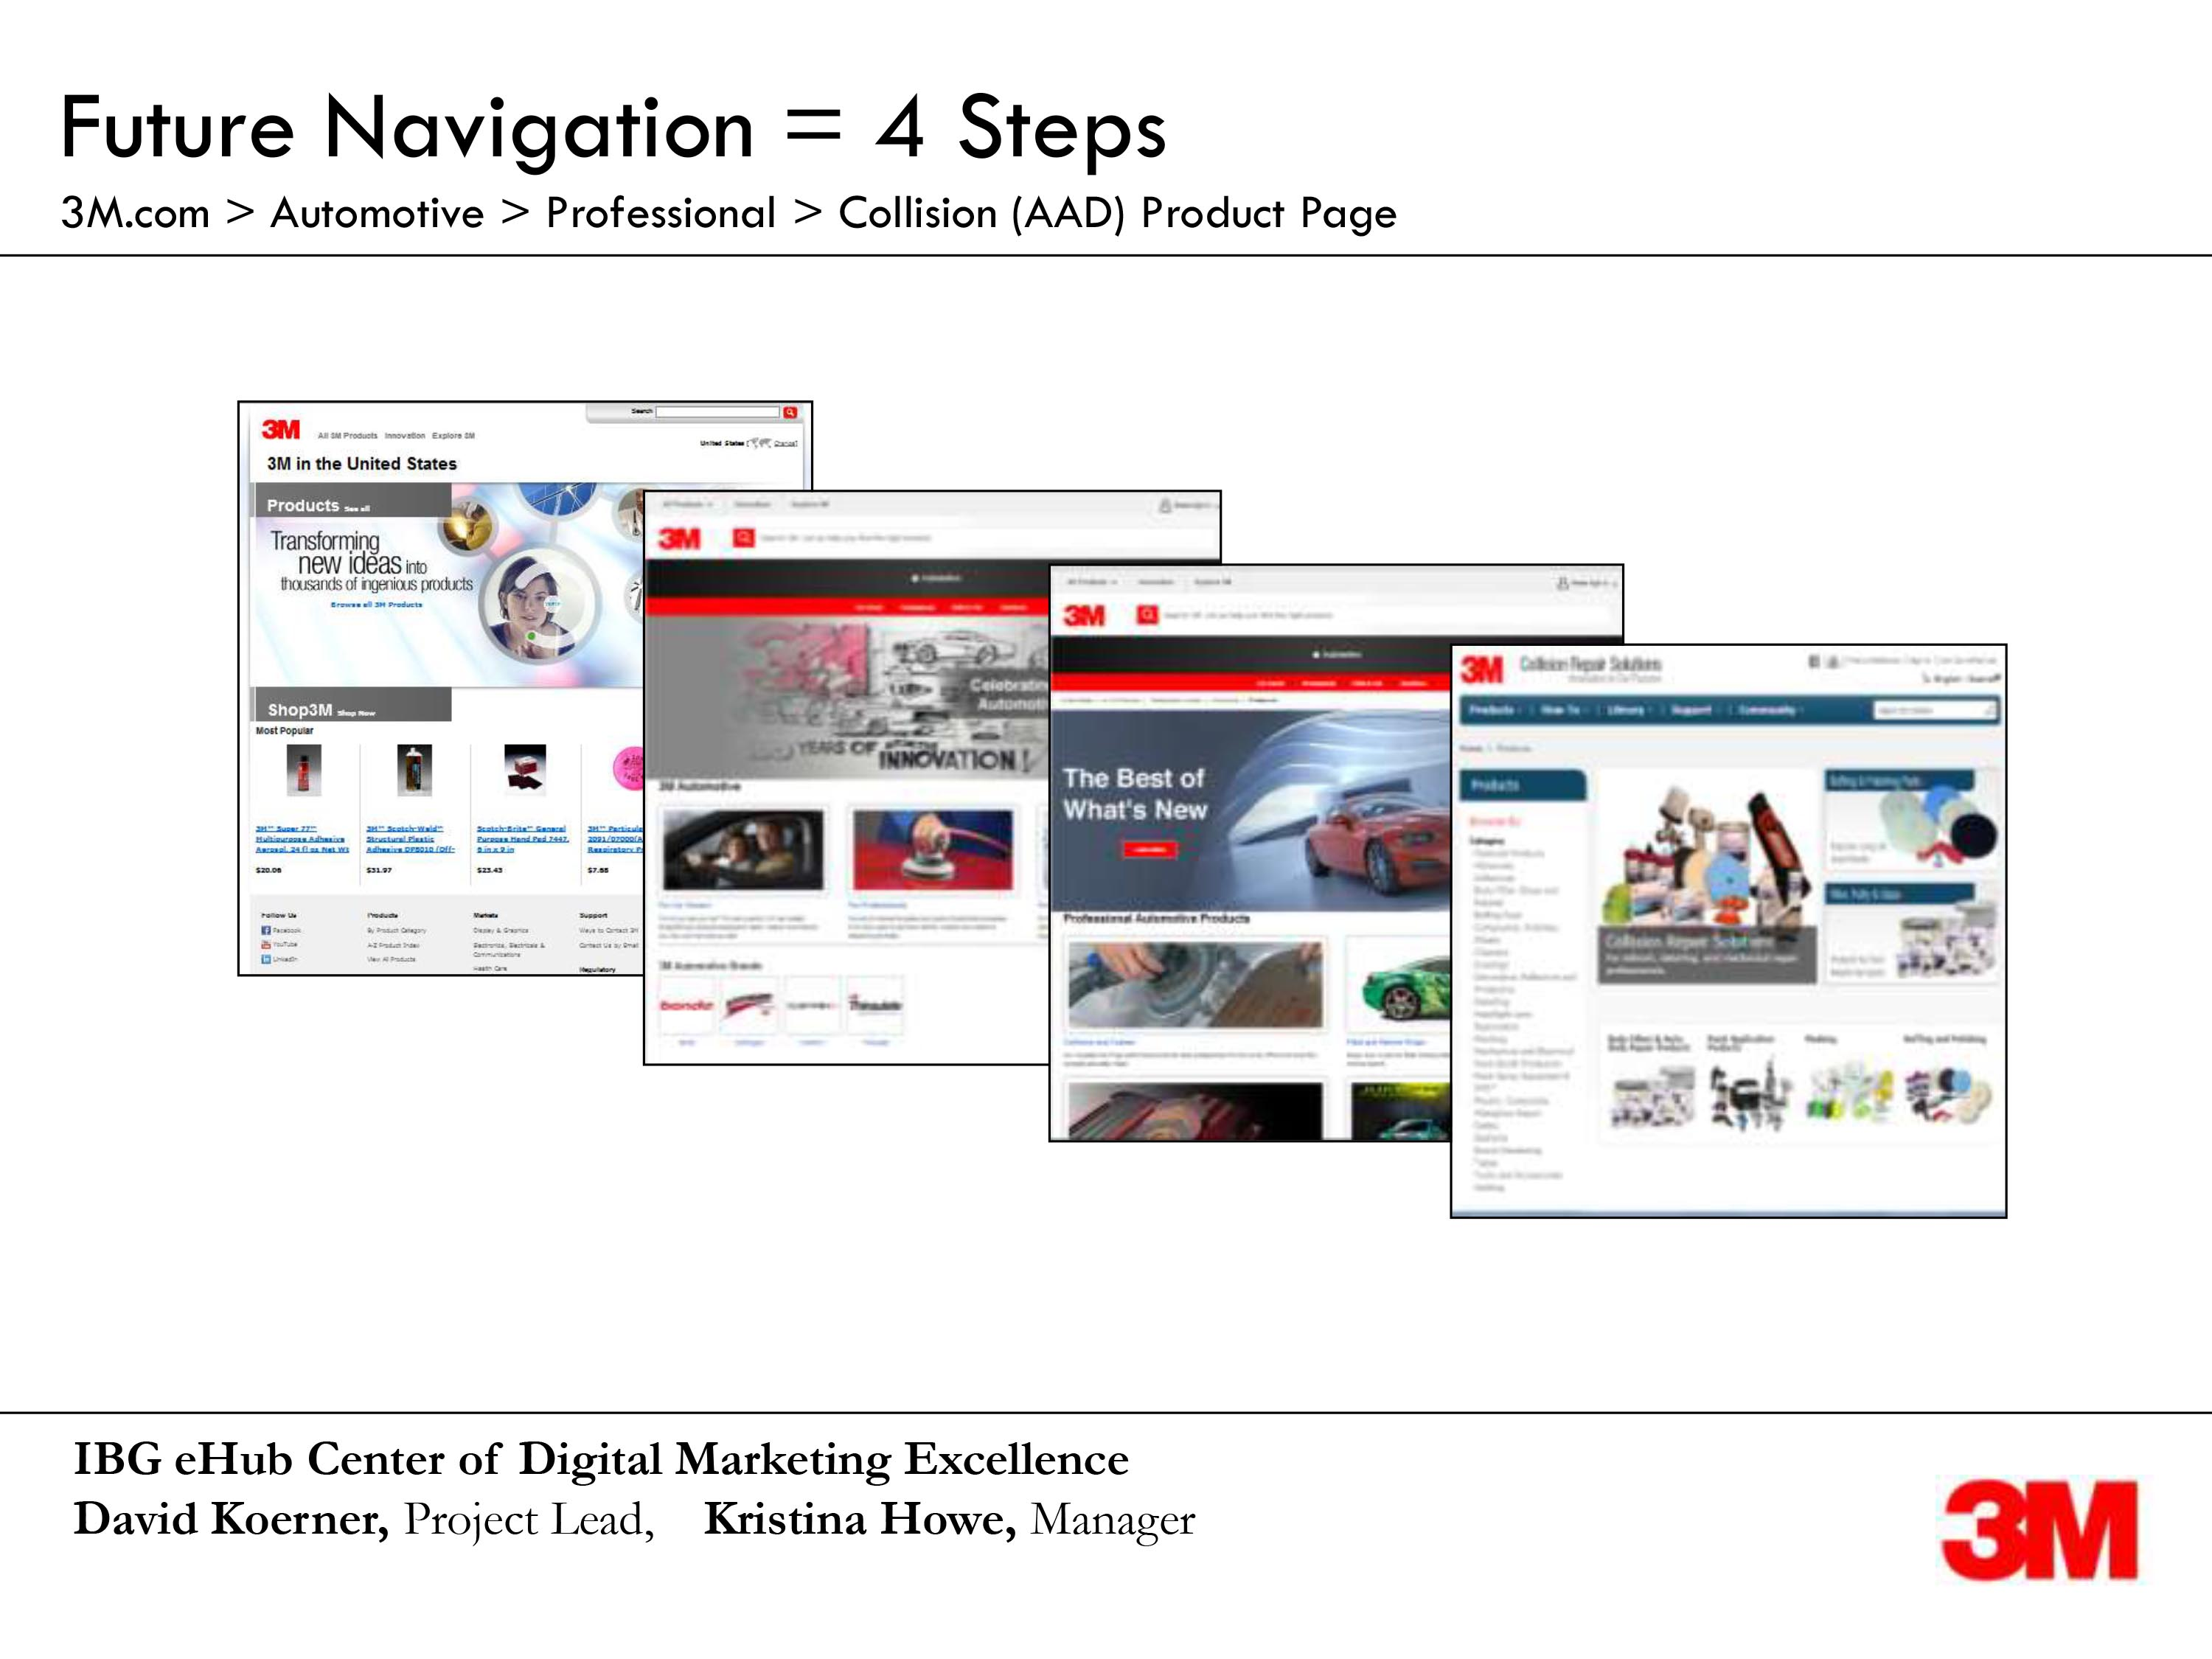 4 screens of product navigation